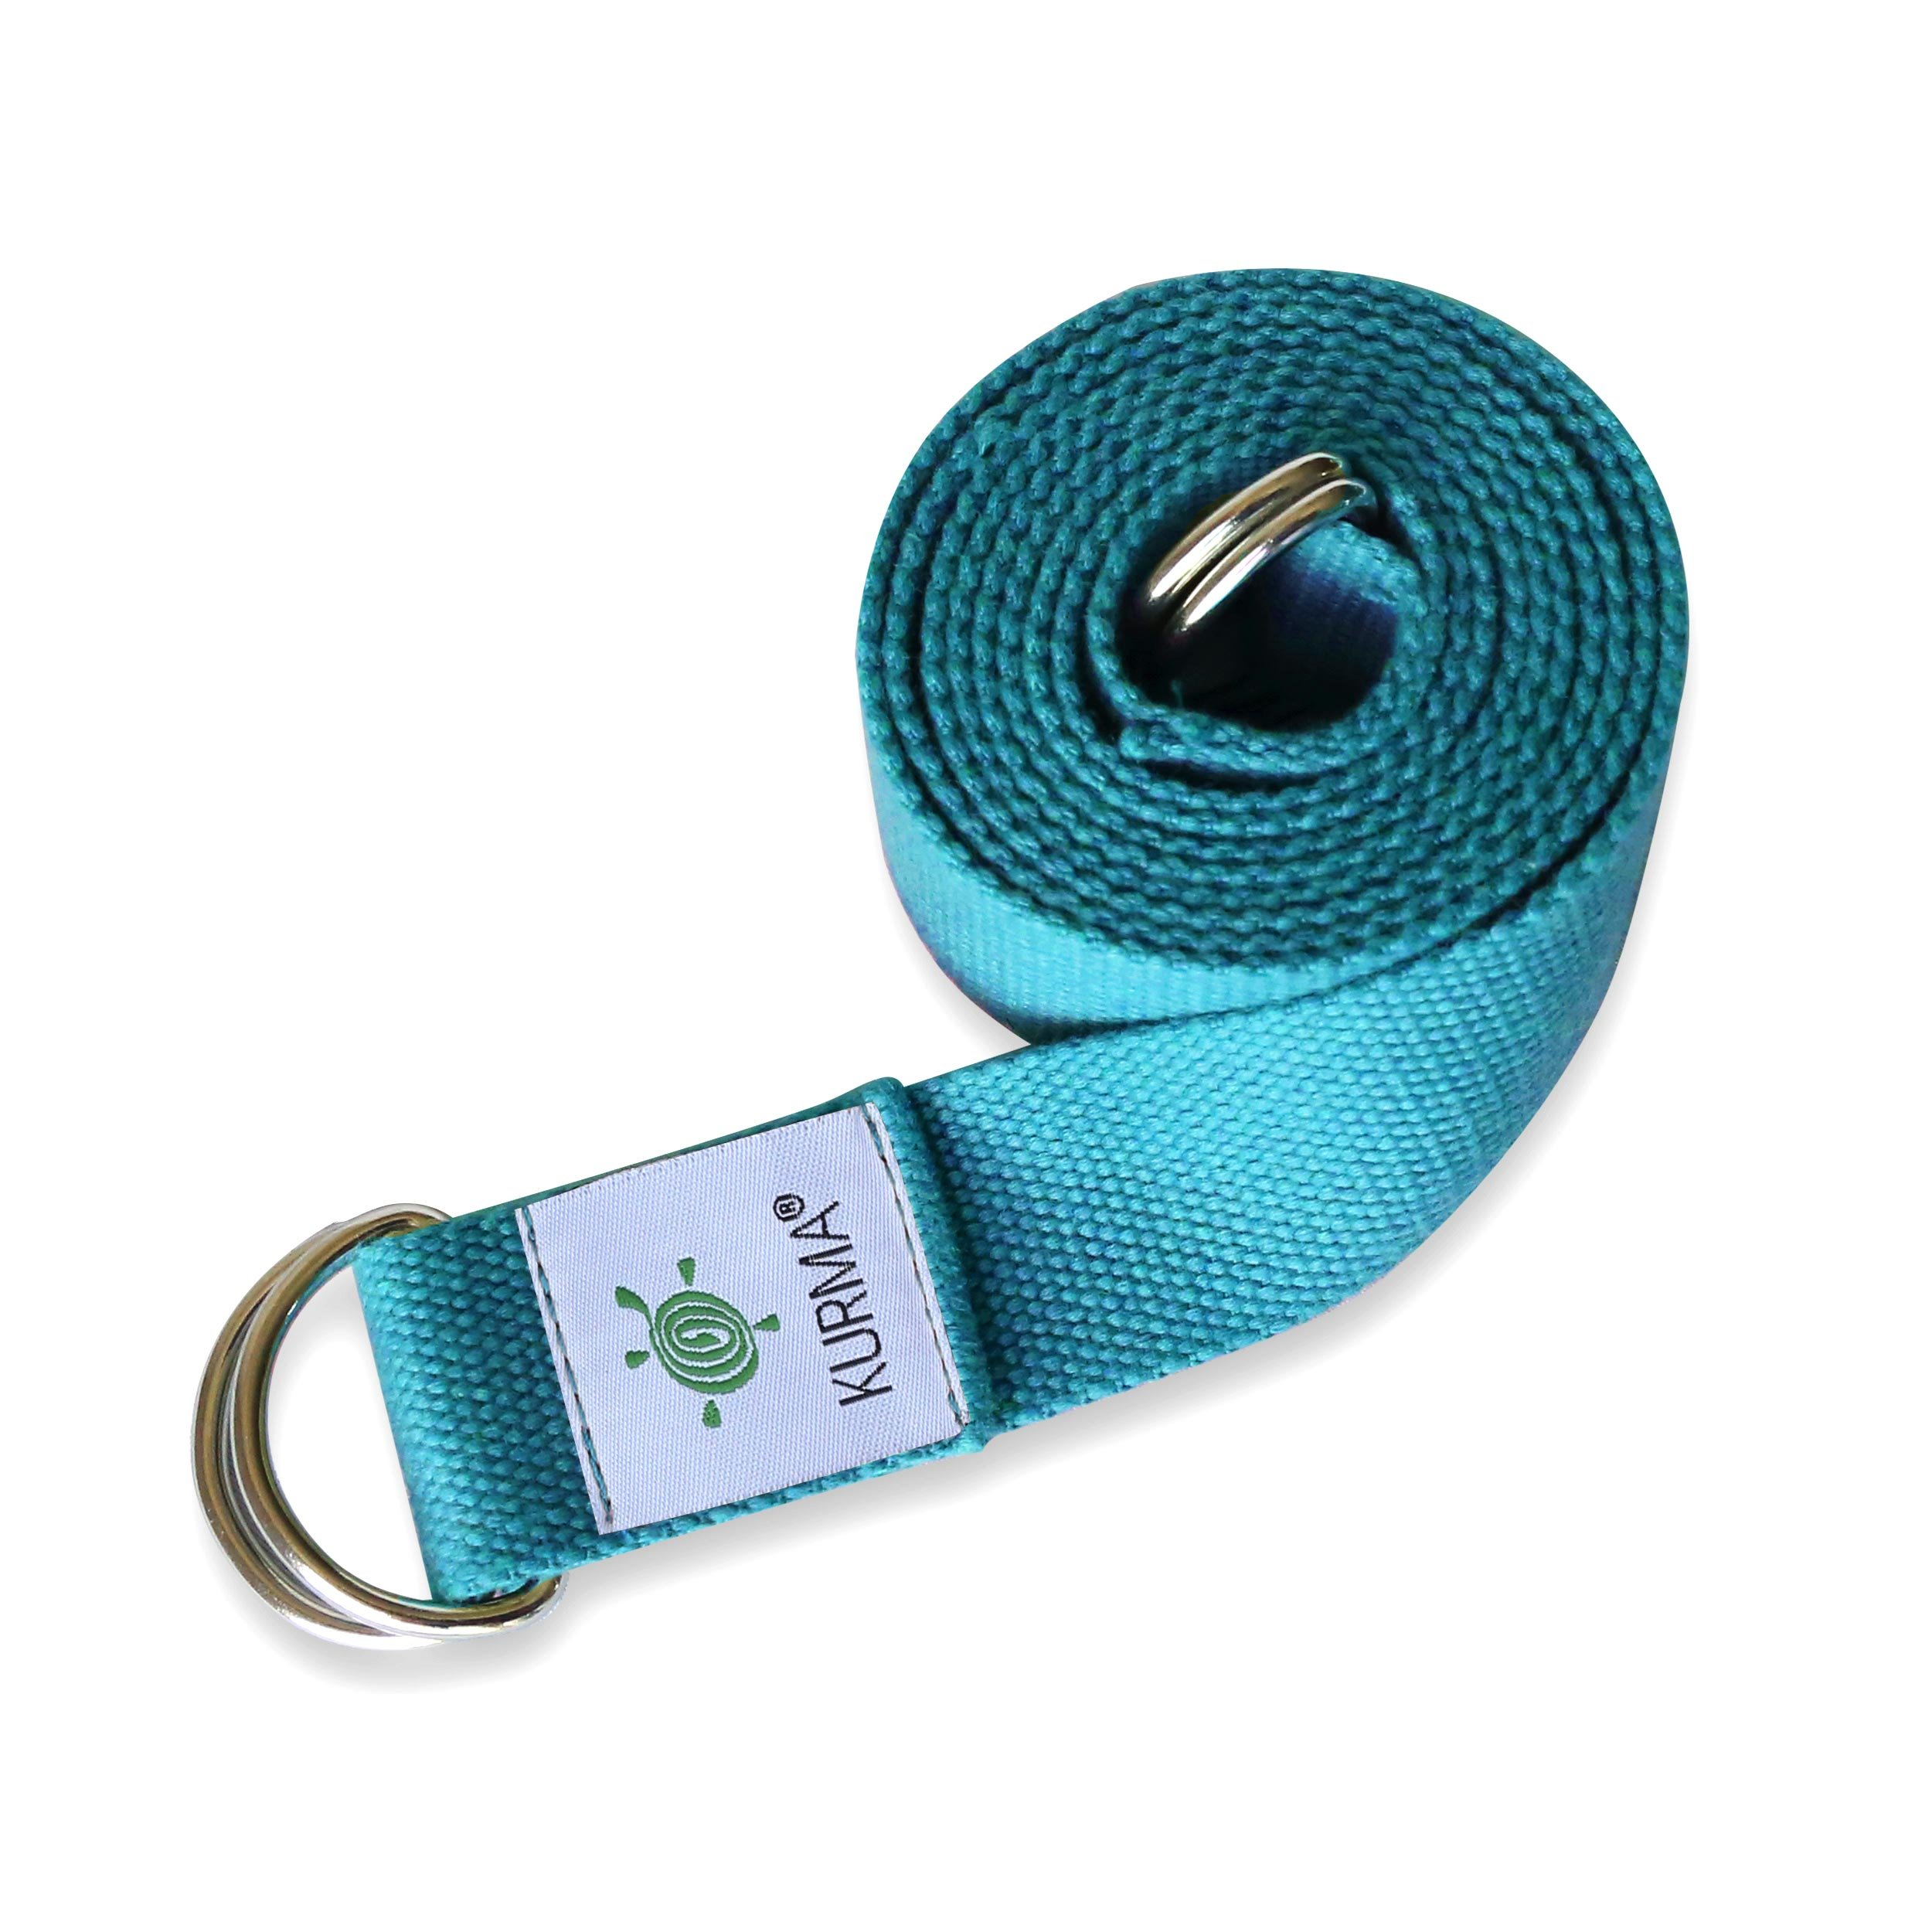 Yoga Belt Strap and Yoga Mat Carrying Sling in one, Cotton, Excellent Grip, Soft, For Stretching and Carrying Yoga Mat (Teal)